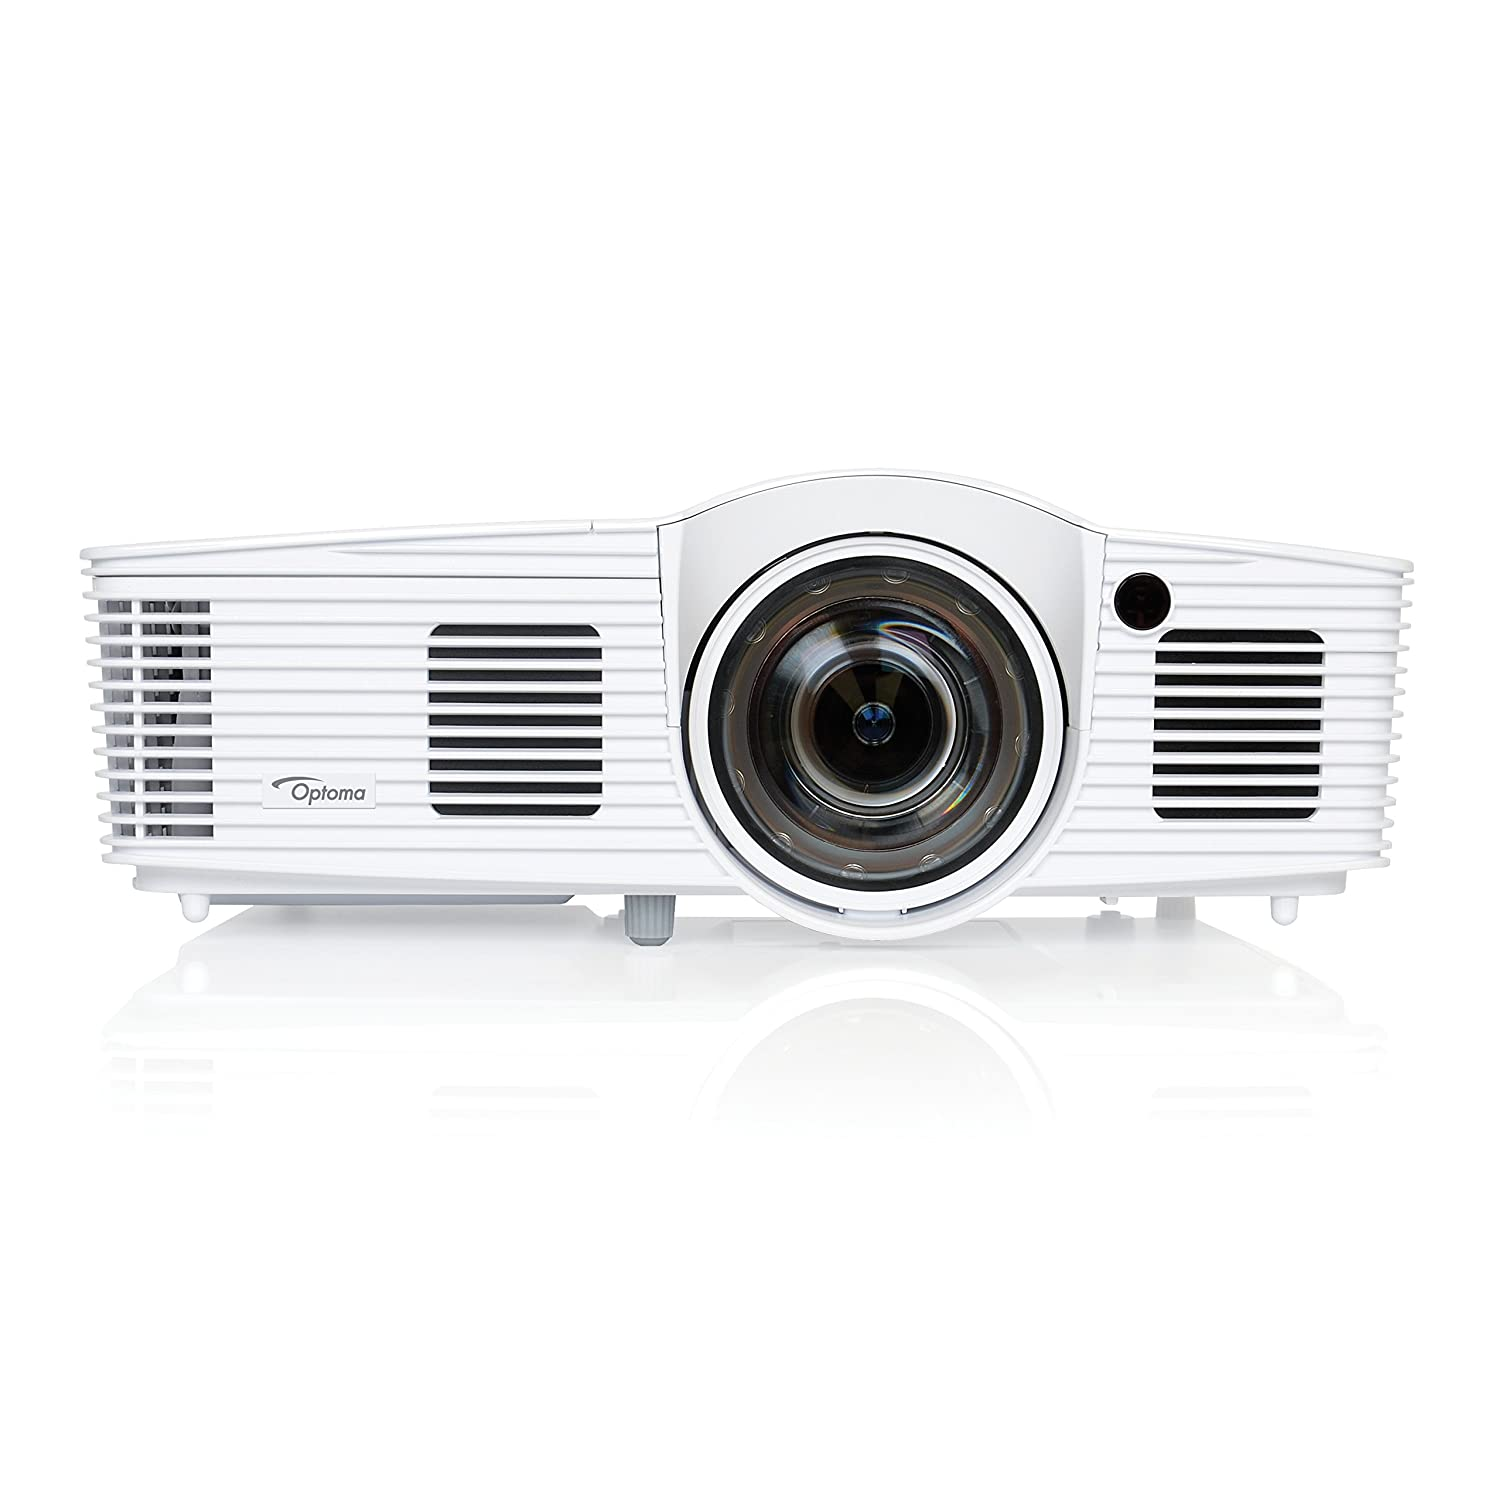 Optoma EH200ST Full 3D 1080p 3000 Lumen DLP Short Throw Projector with 20, 000:1 Contrast Ratio and MHL Enabled HDMI Port Optoma Canada